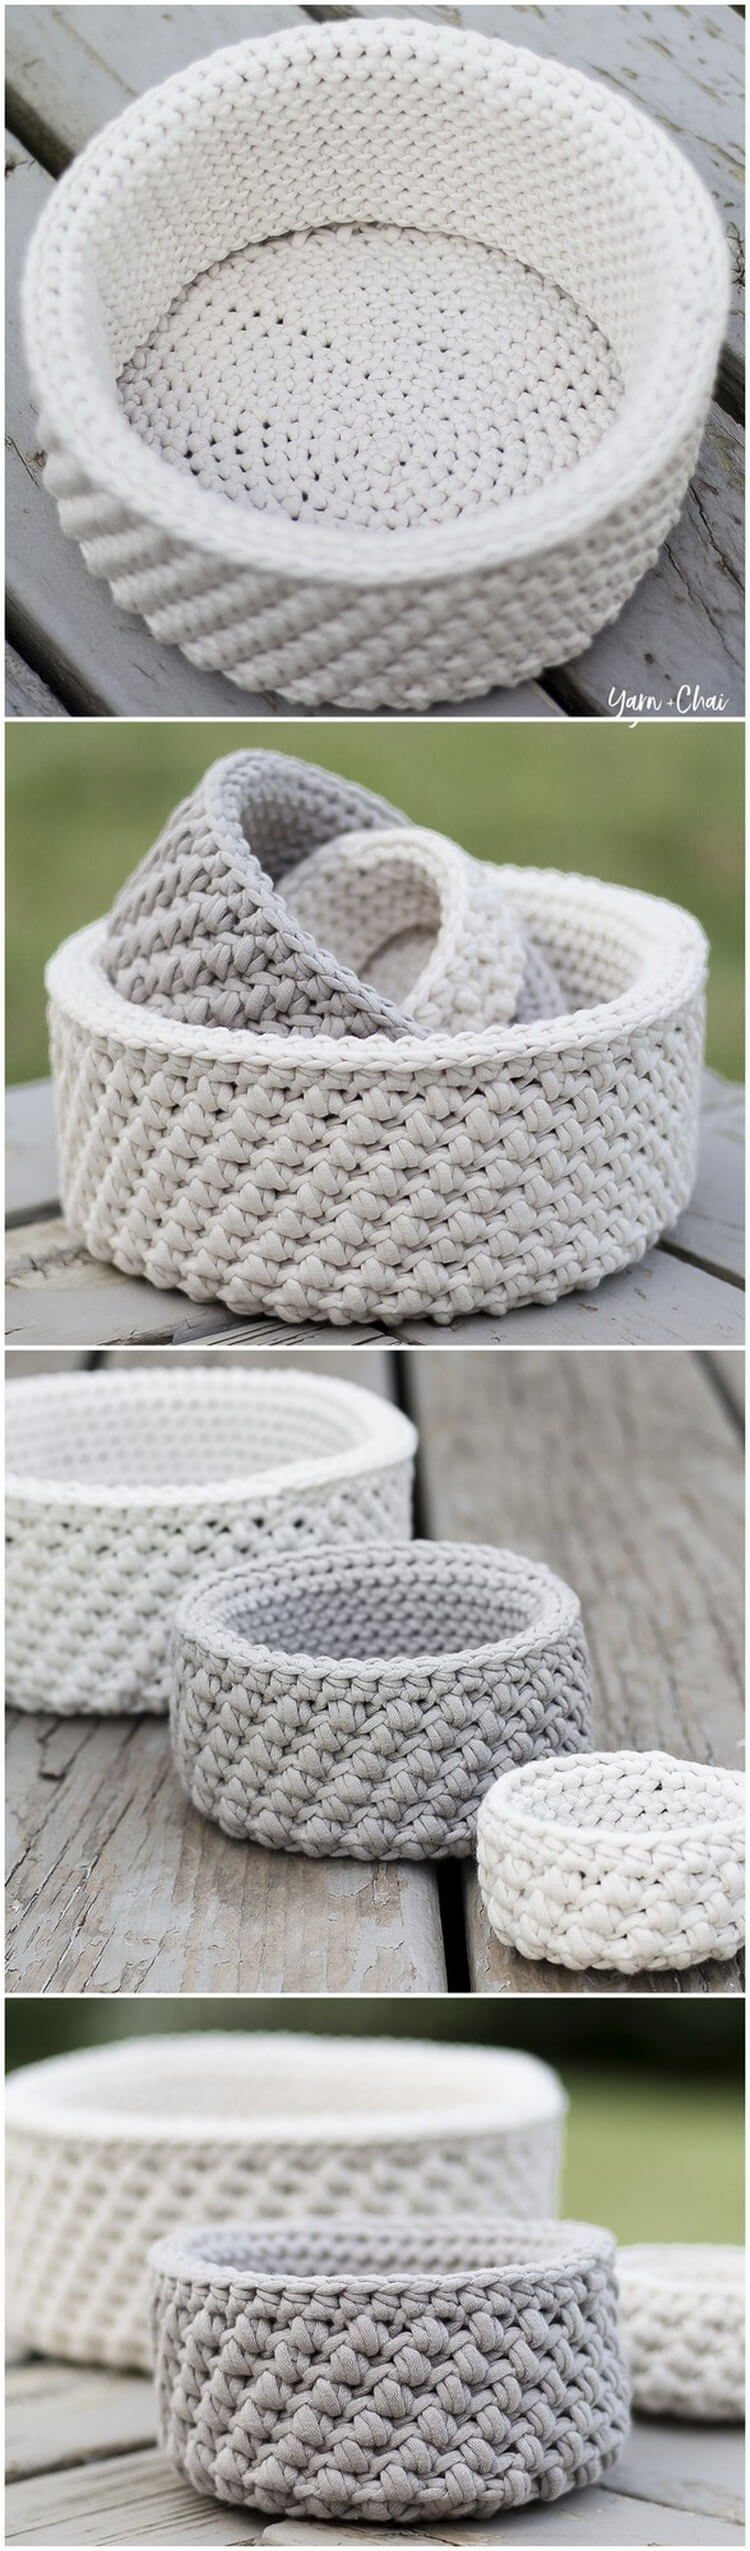 Crochet Basket Pattern (19)